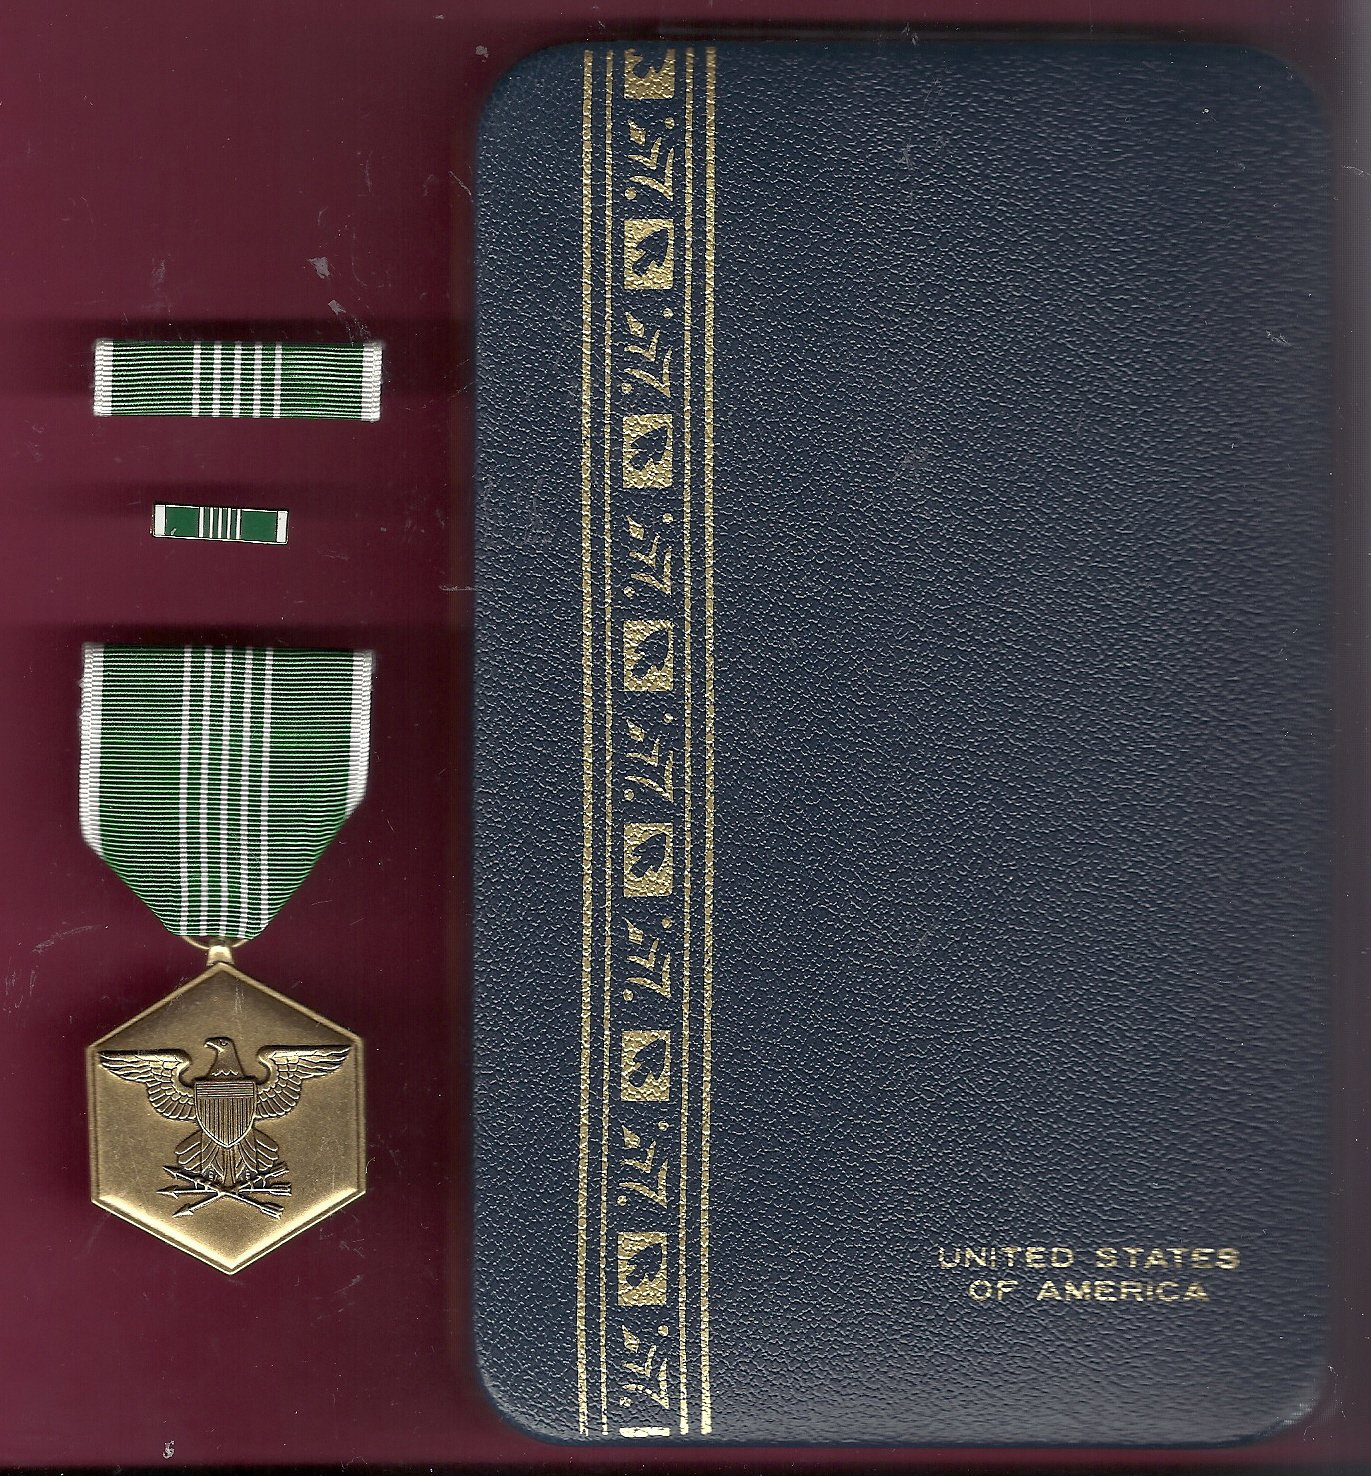 Army Commendation medal in case with ribbon bar and lapel pin